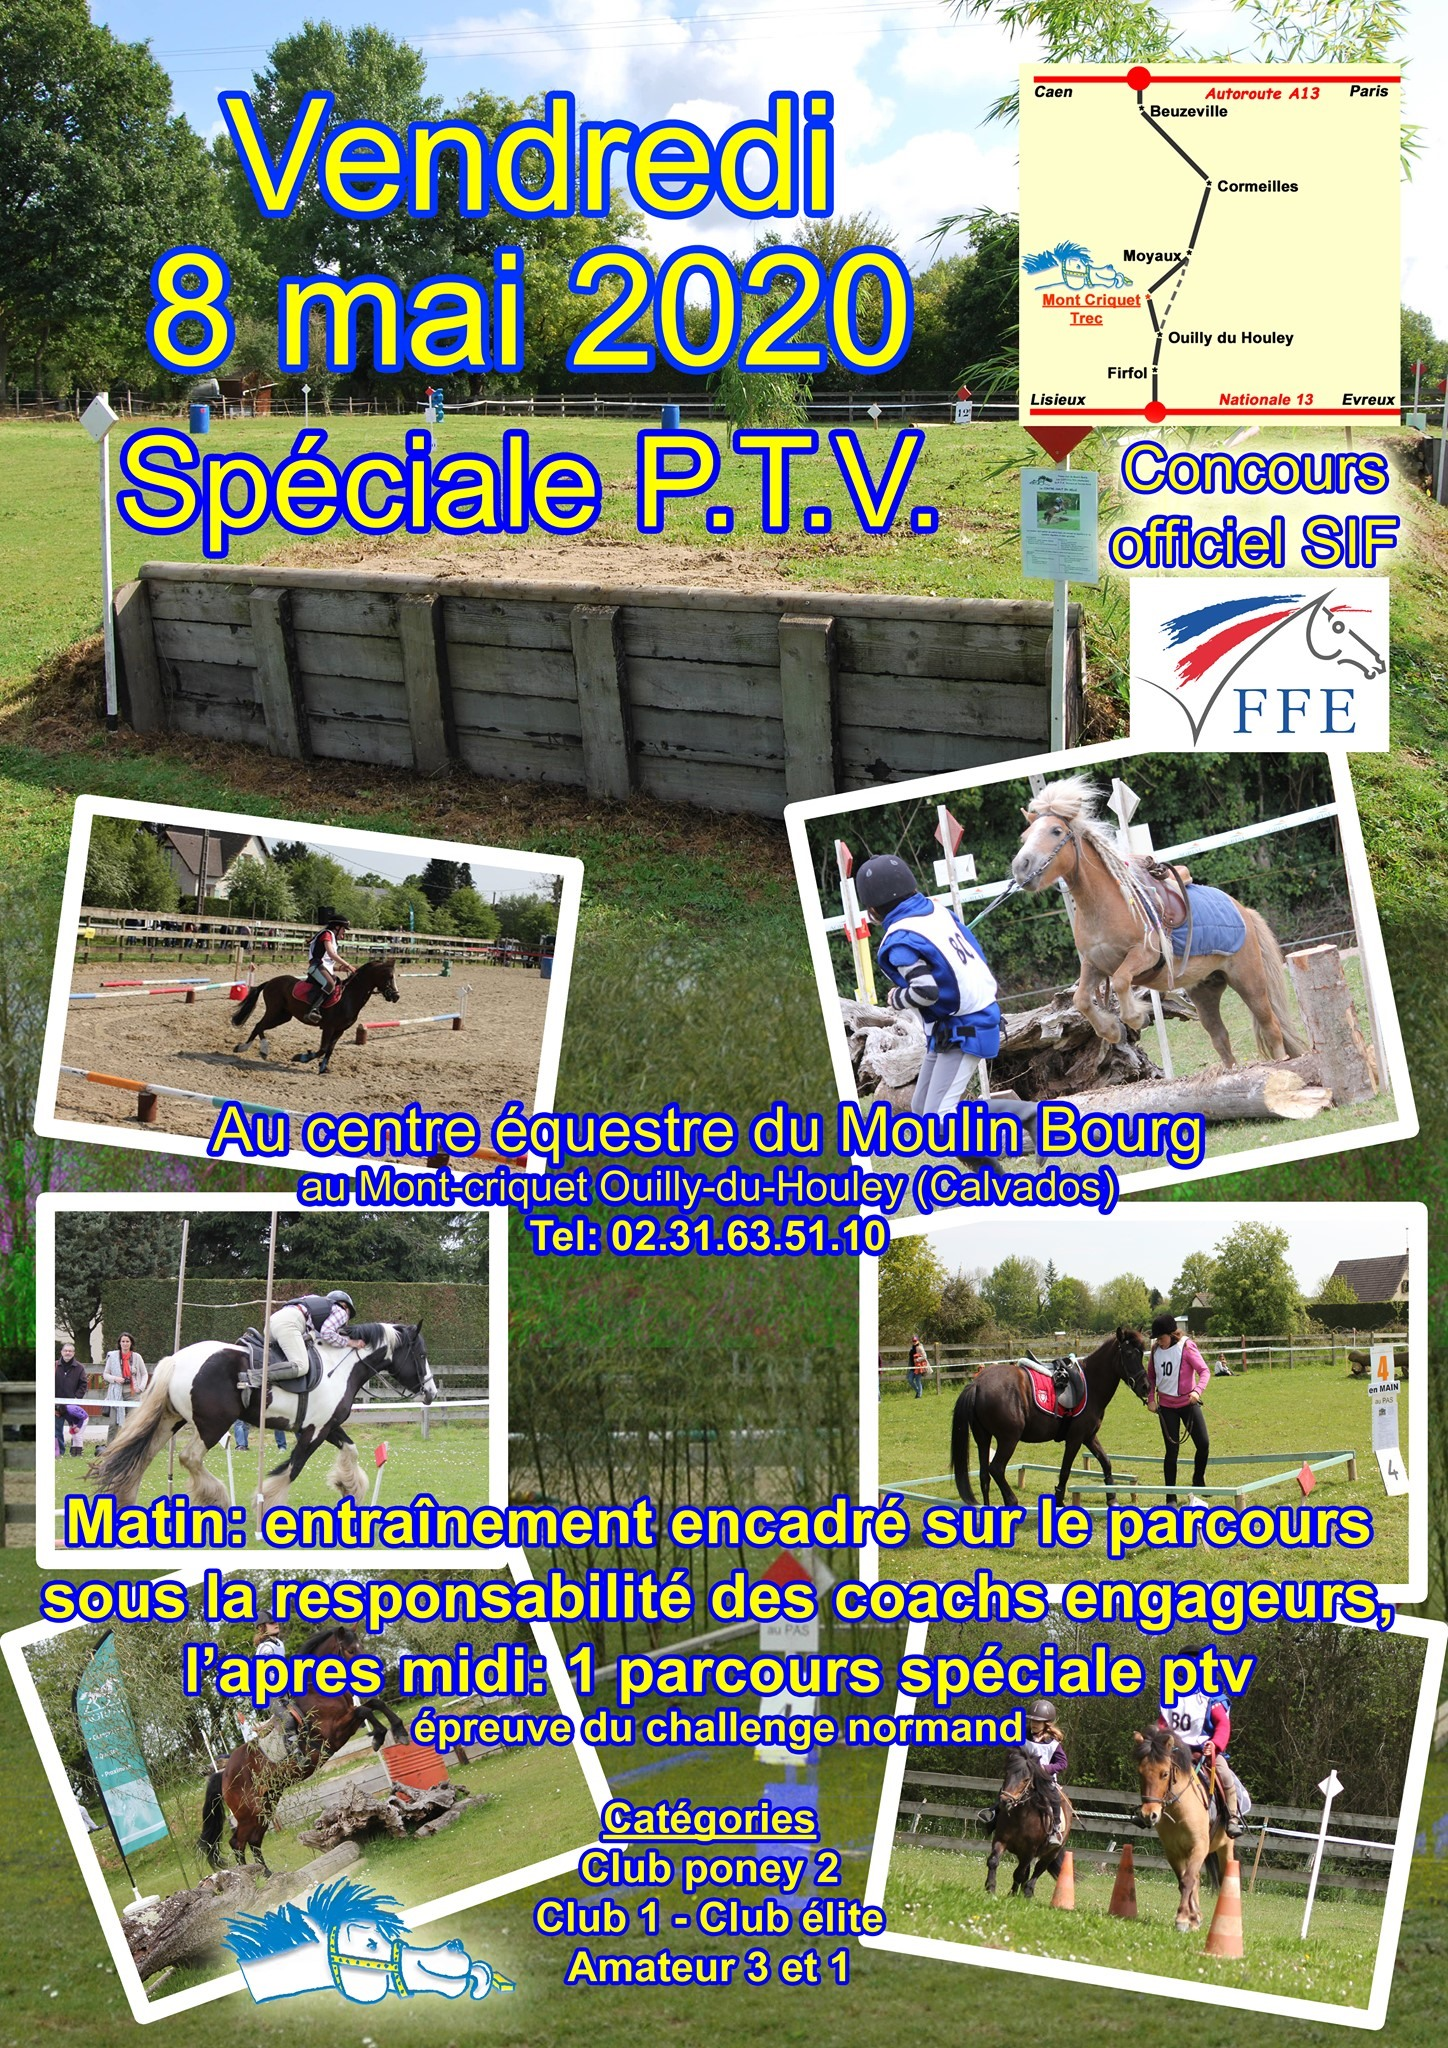 Speciale PTV (14) Ouilly